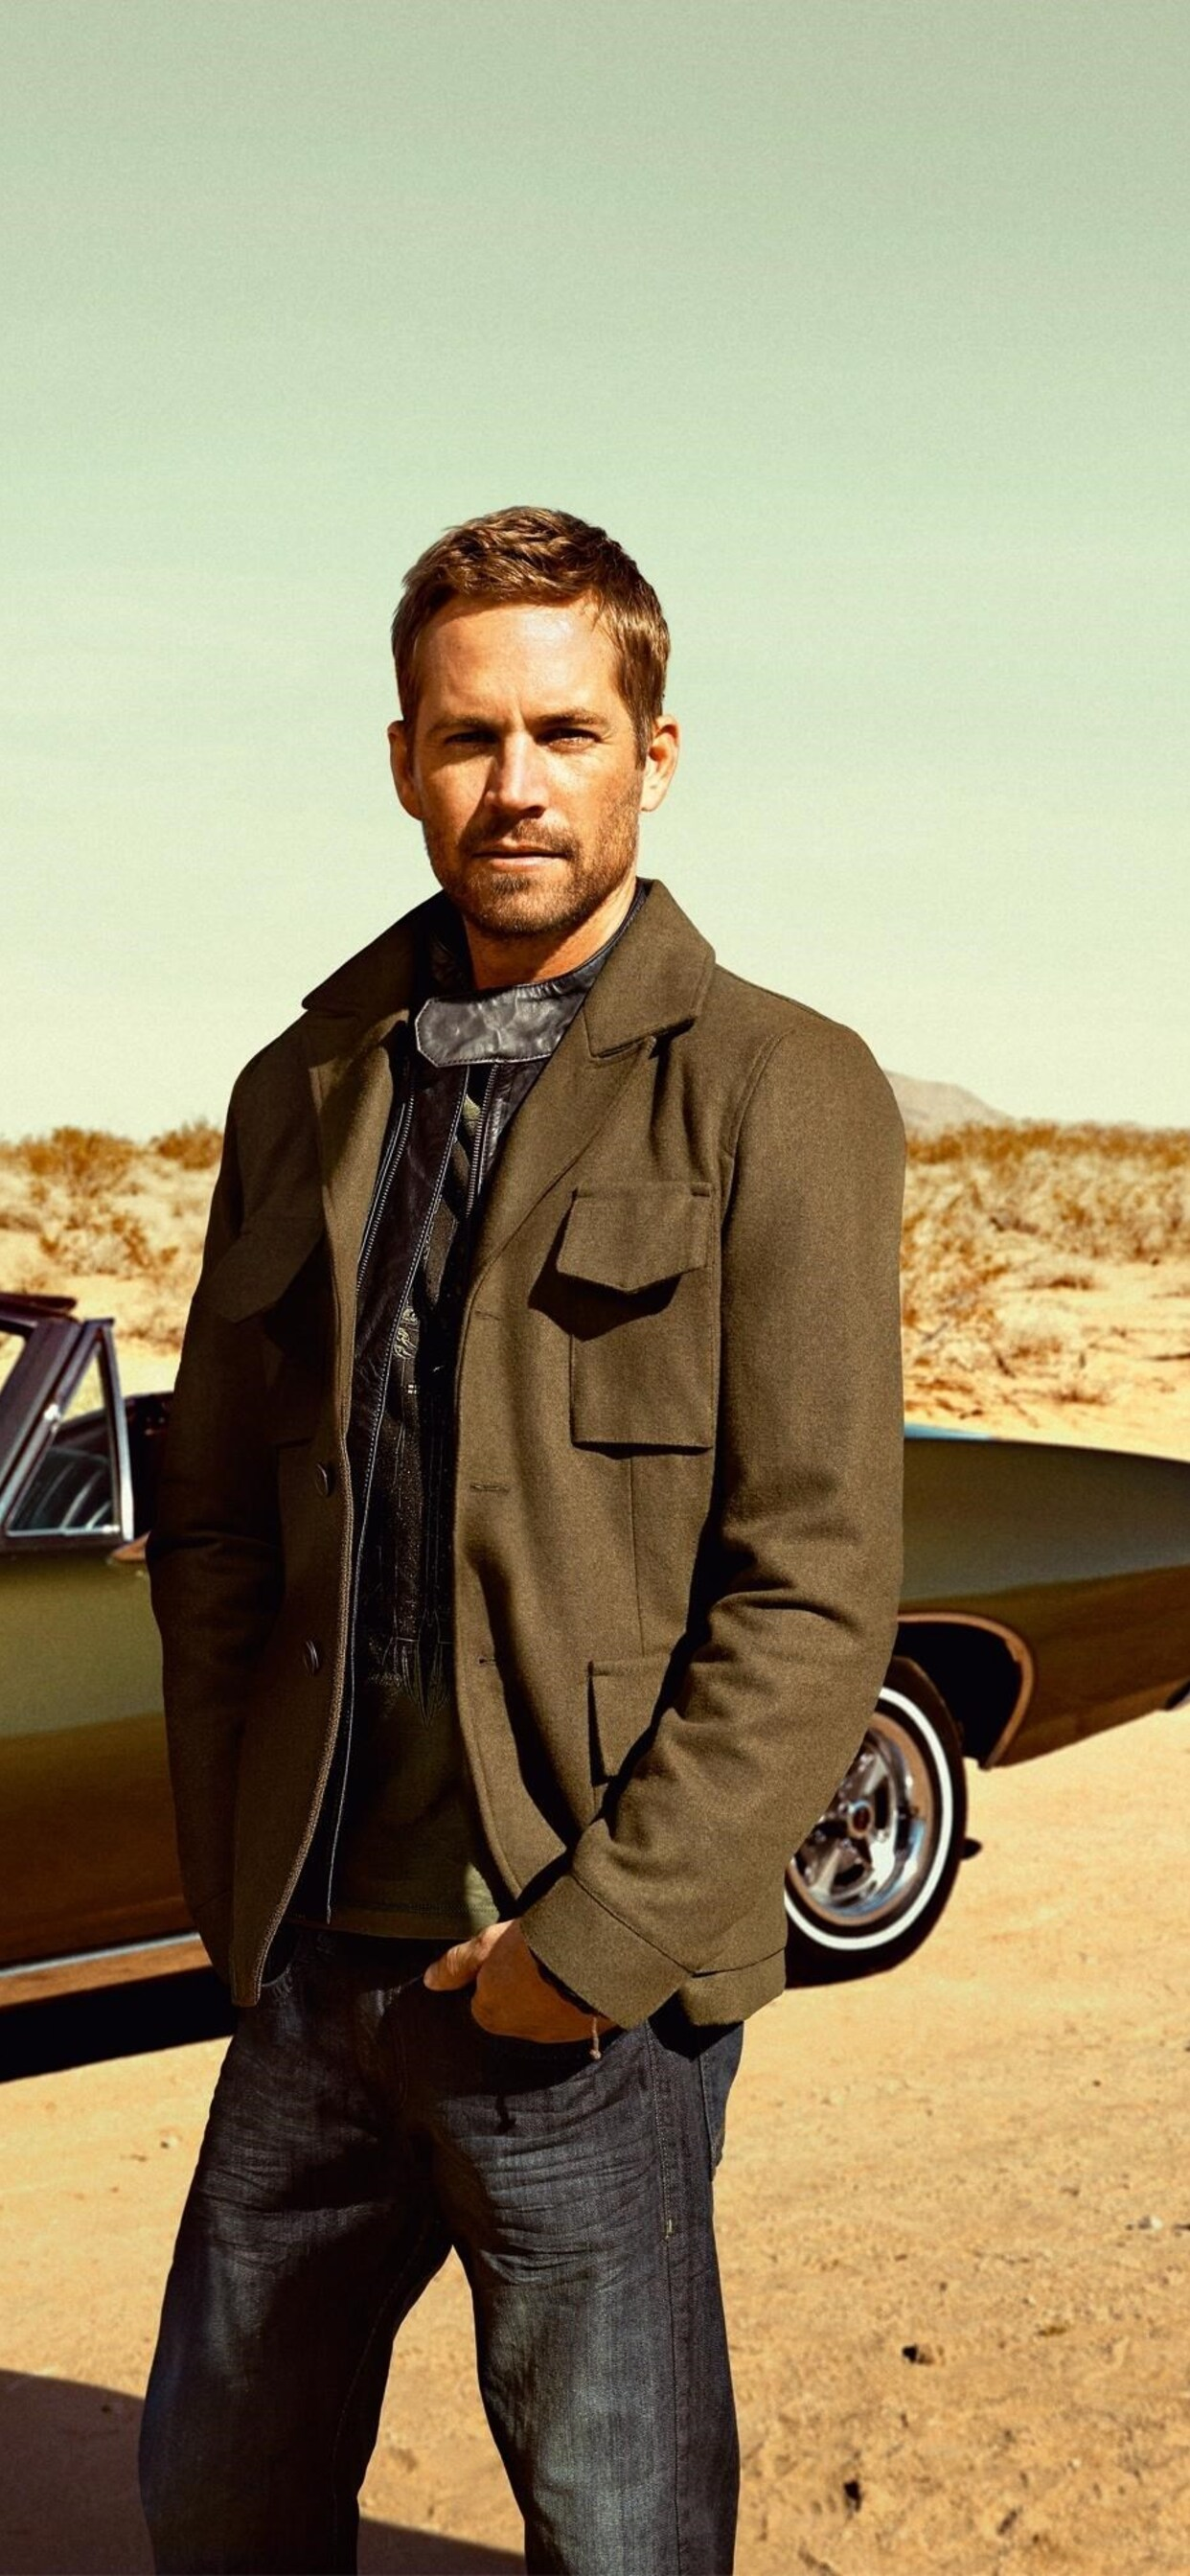 Paul Walker With Cars Iphone Xs Max